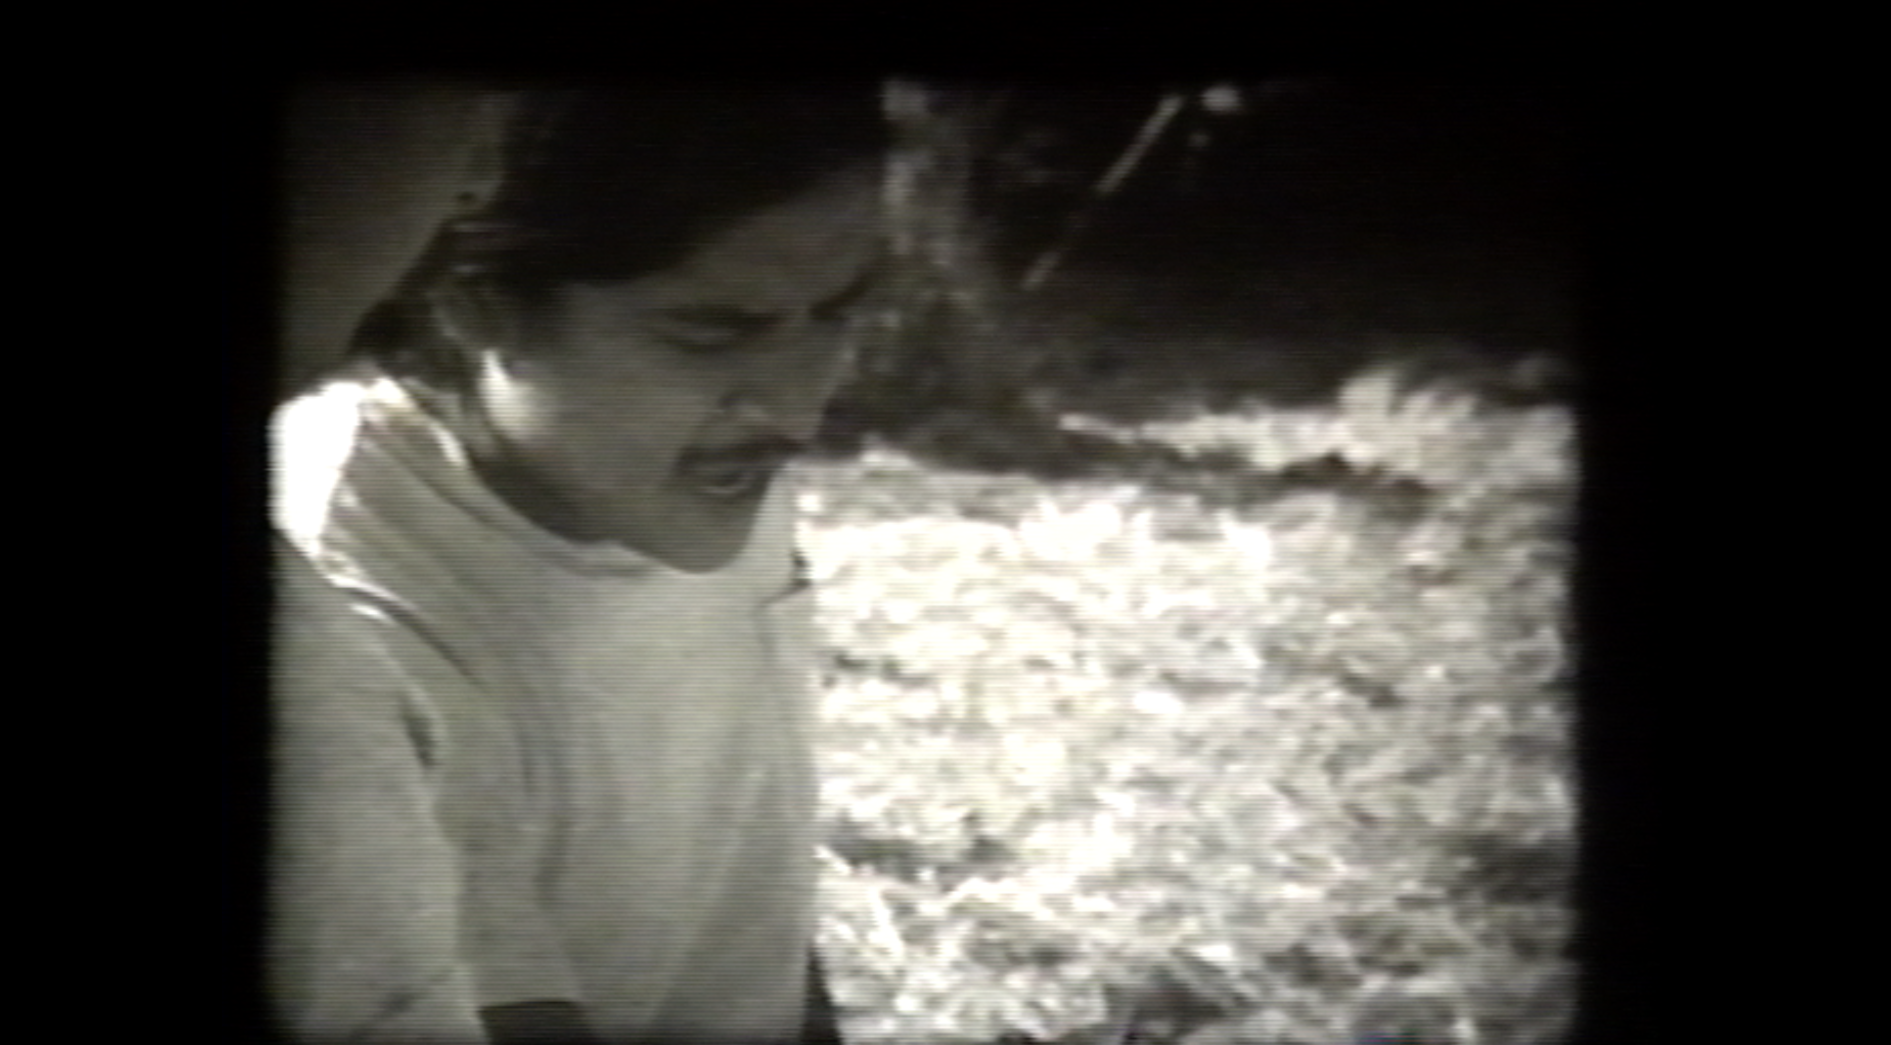 Image from the film  HOUSE FOR THE AUTUMN EQUINOX  (1992) written & directed by Kristy Edmonds & Helen Lessick.